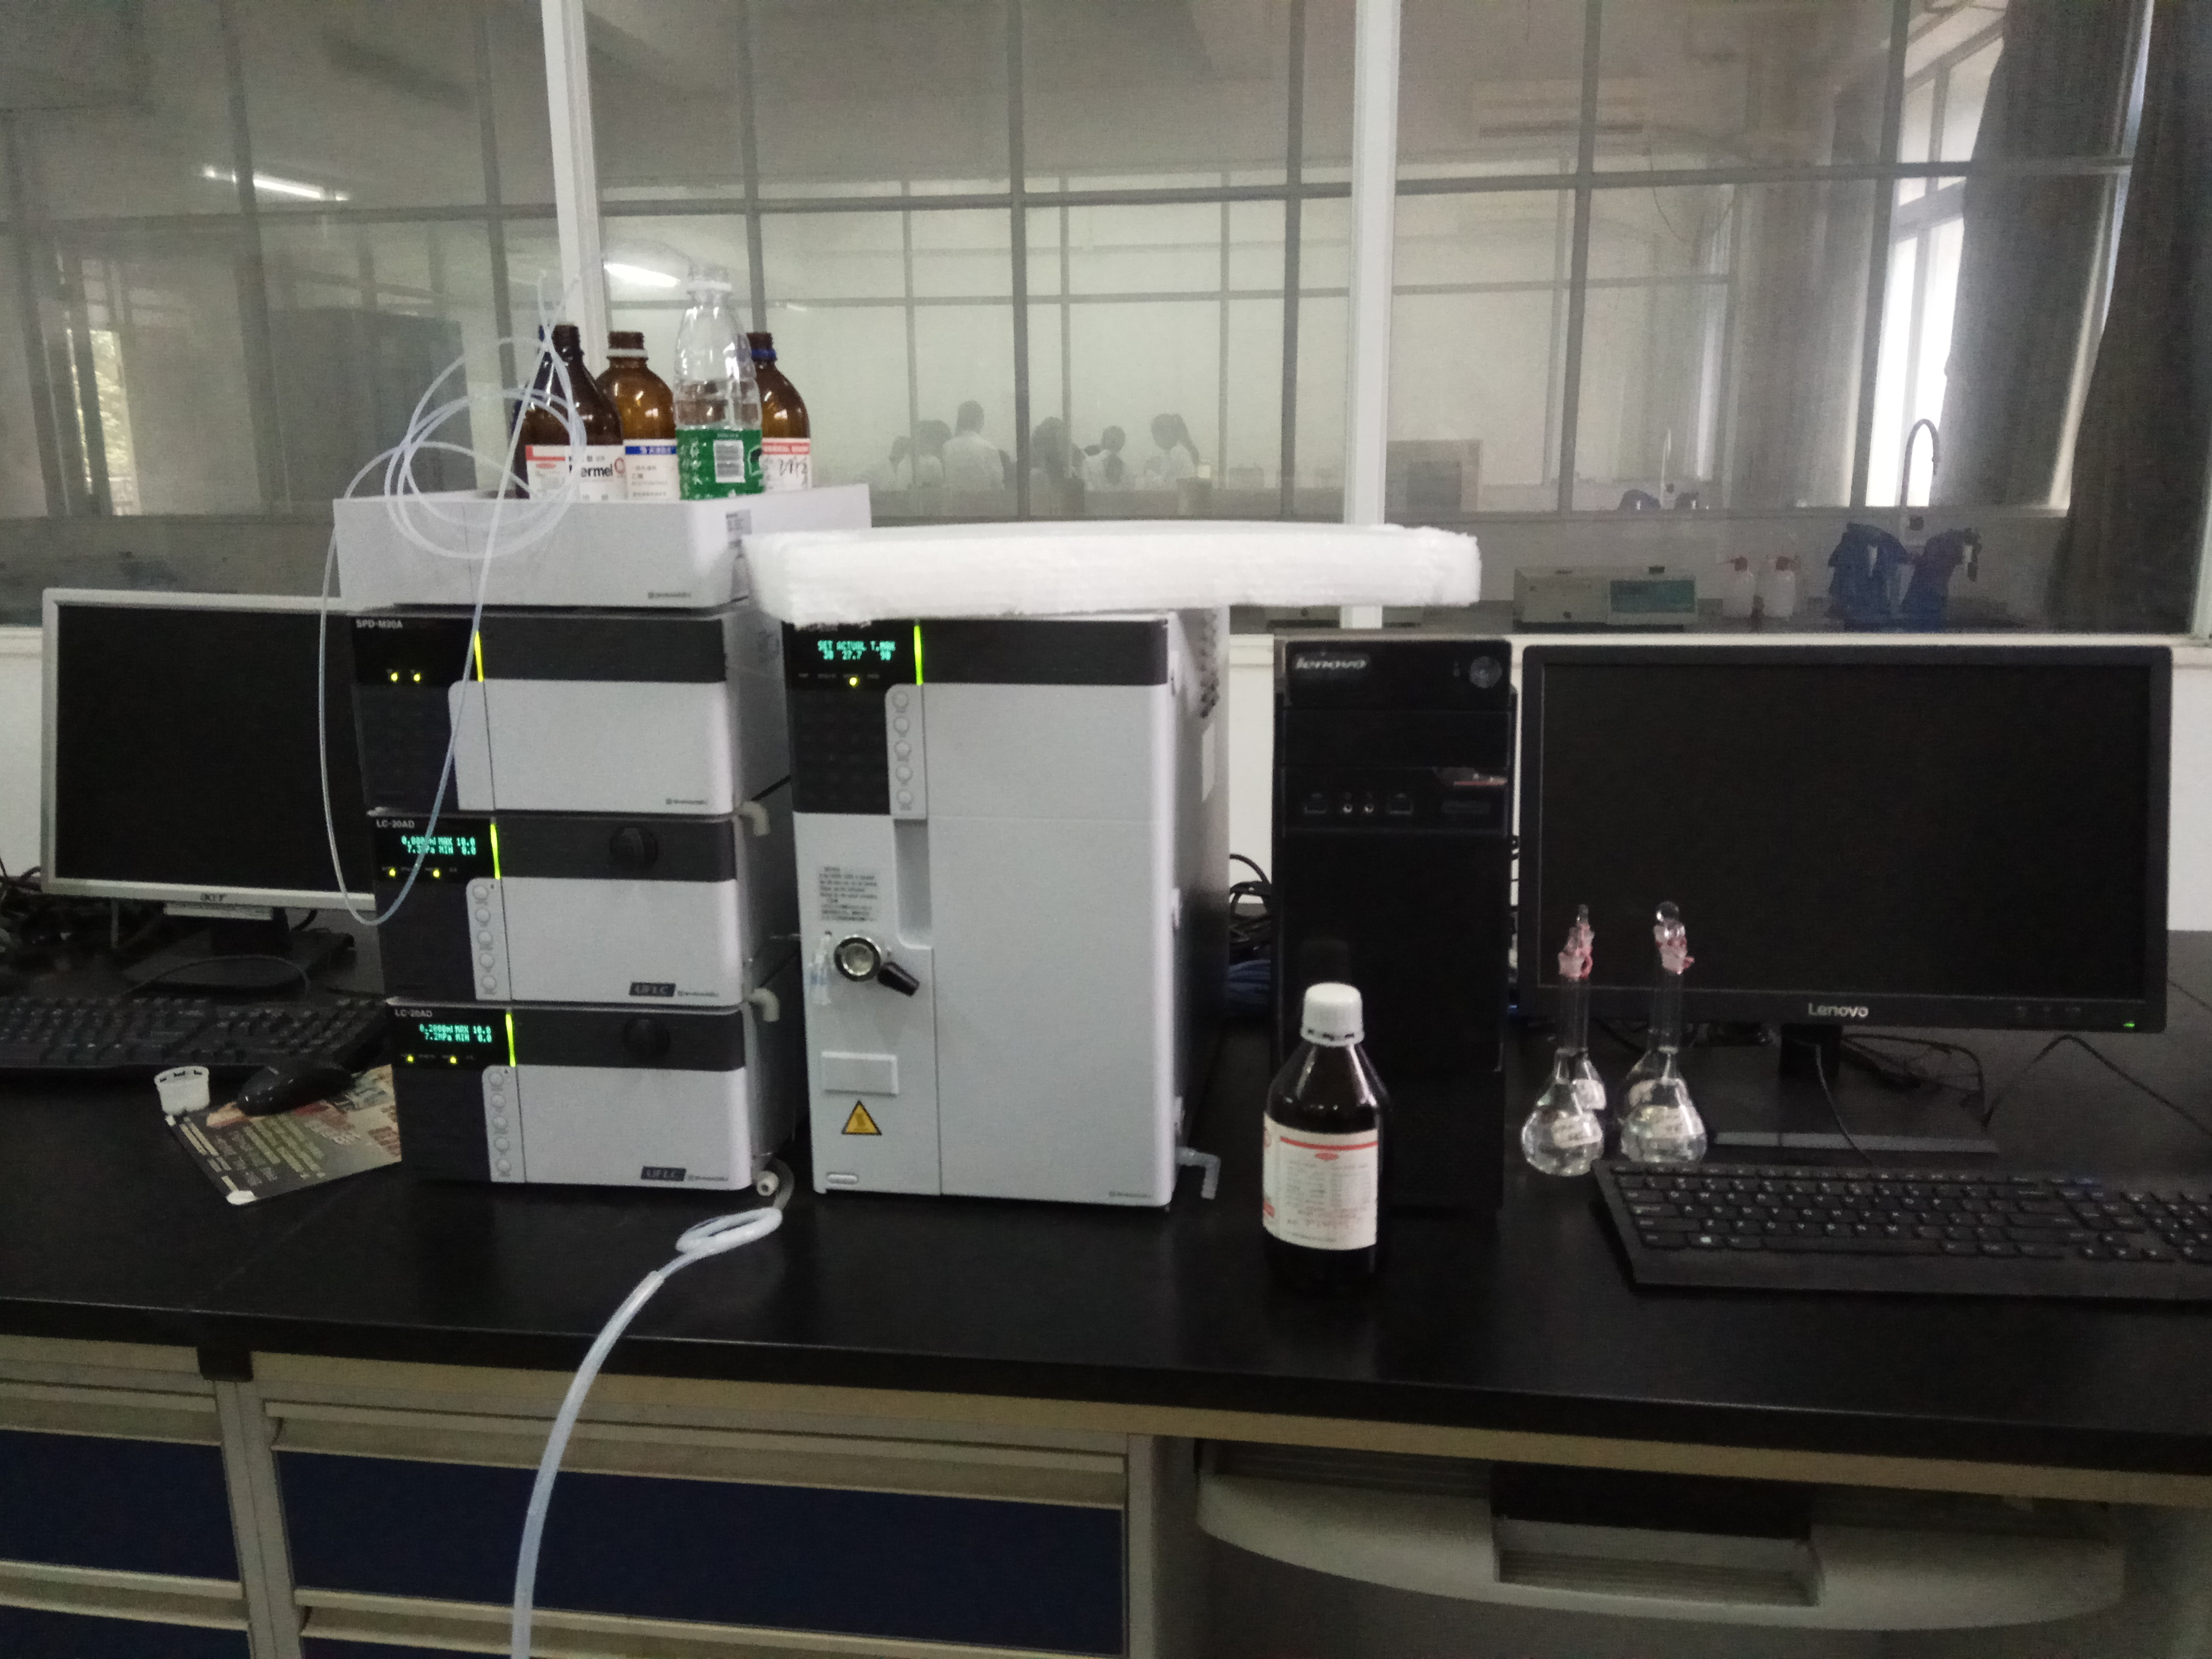 File:High-performance liquid chromatography.jpg - Wikimedia Commons